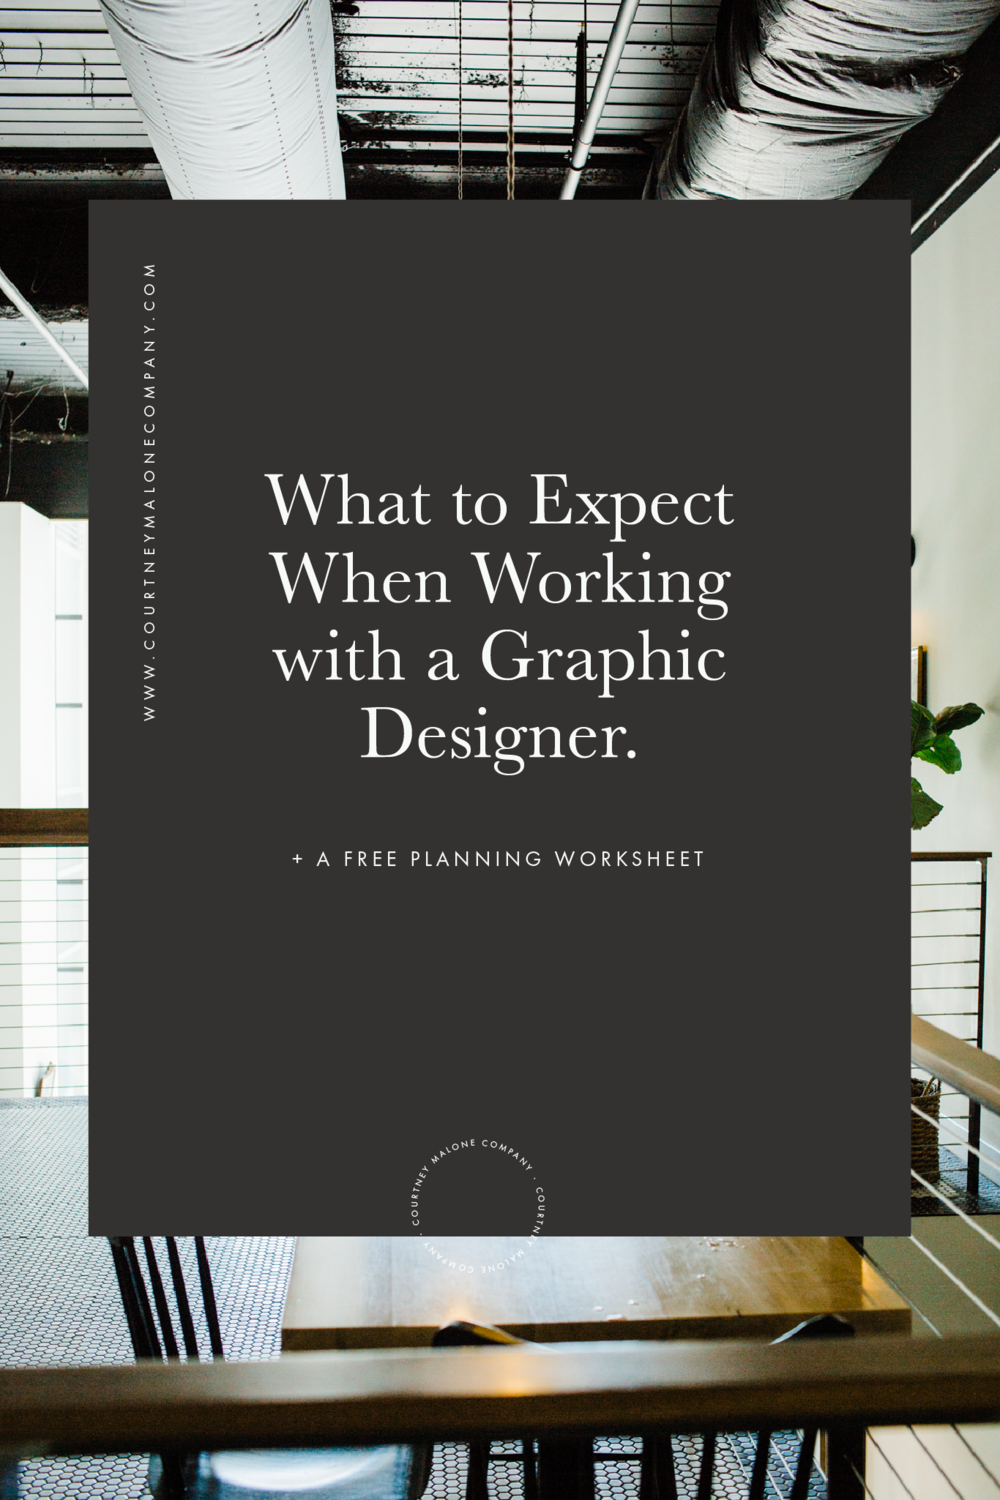 Demystifying The Design Process | What to expect when working with a graphic designer + a free pre-planning worksheet!